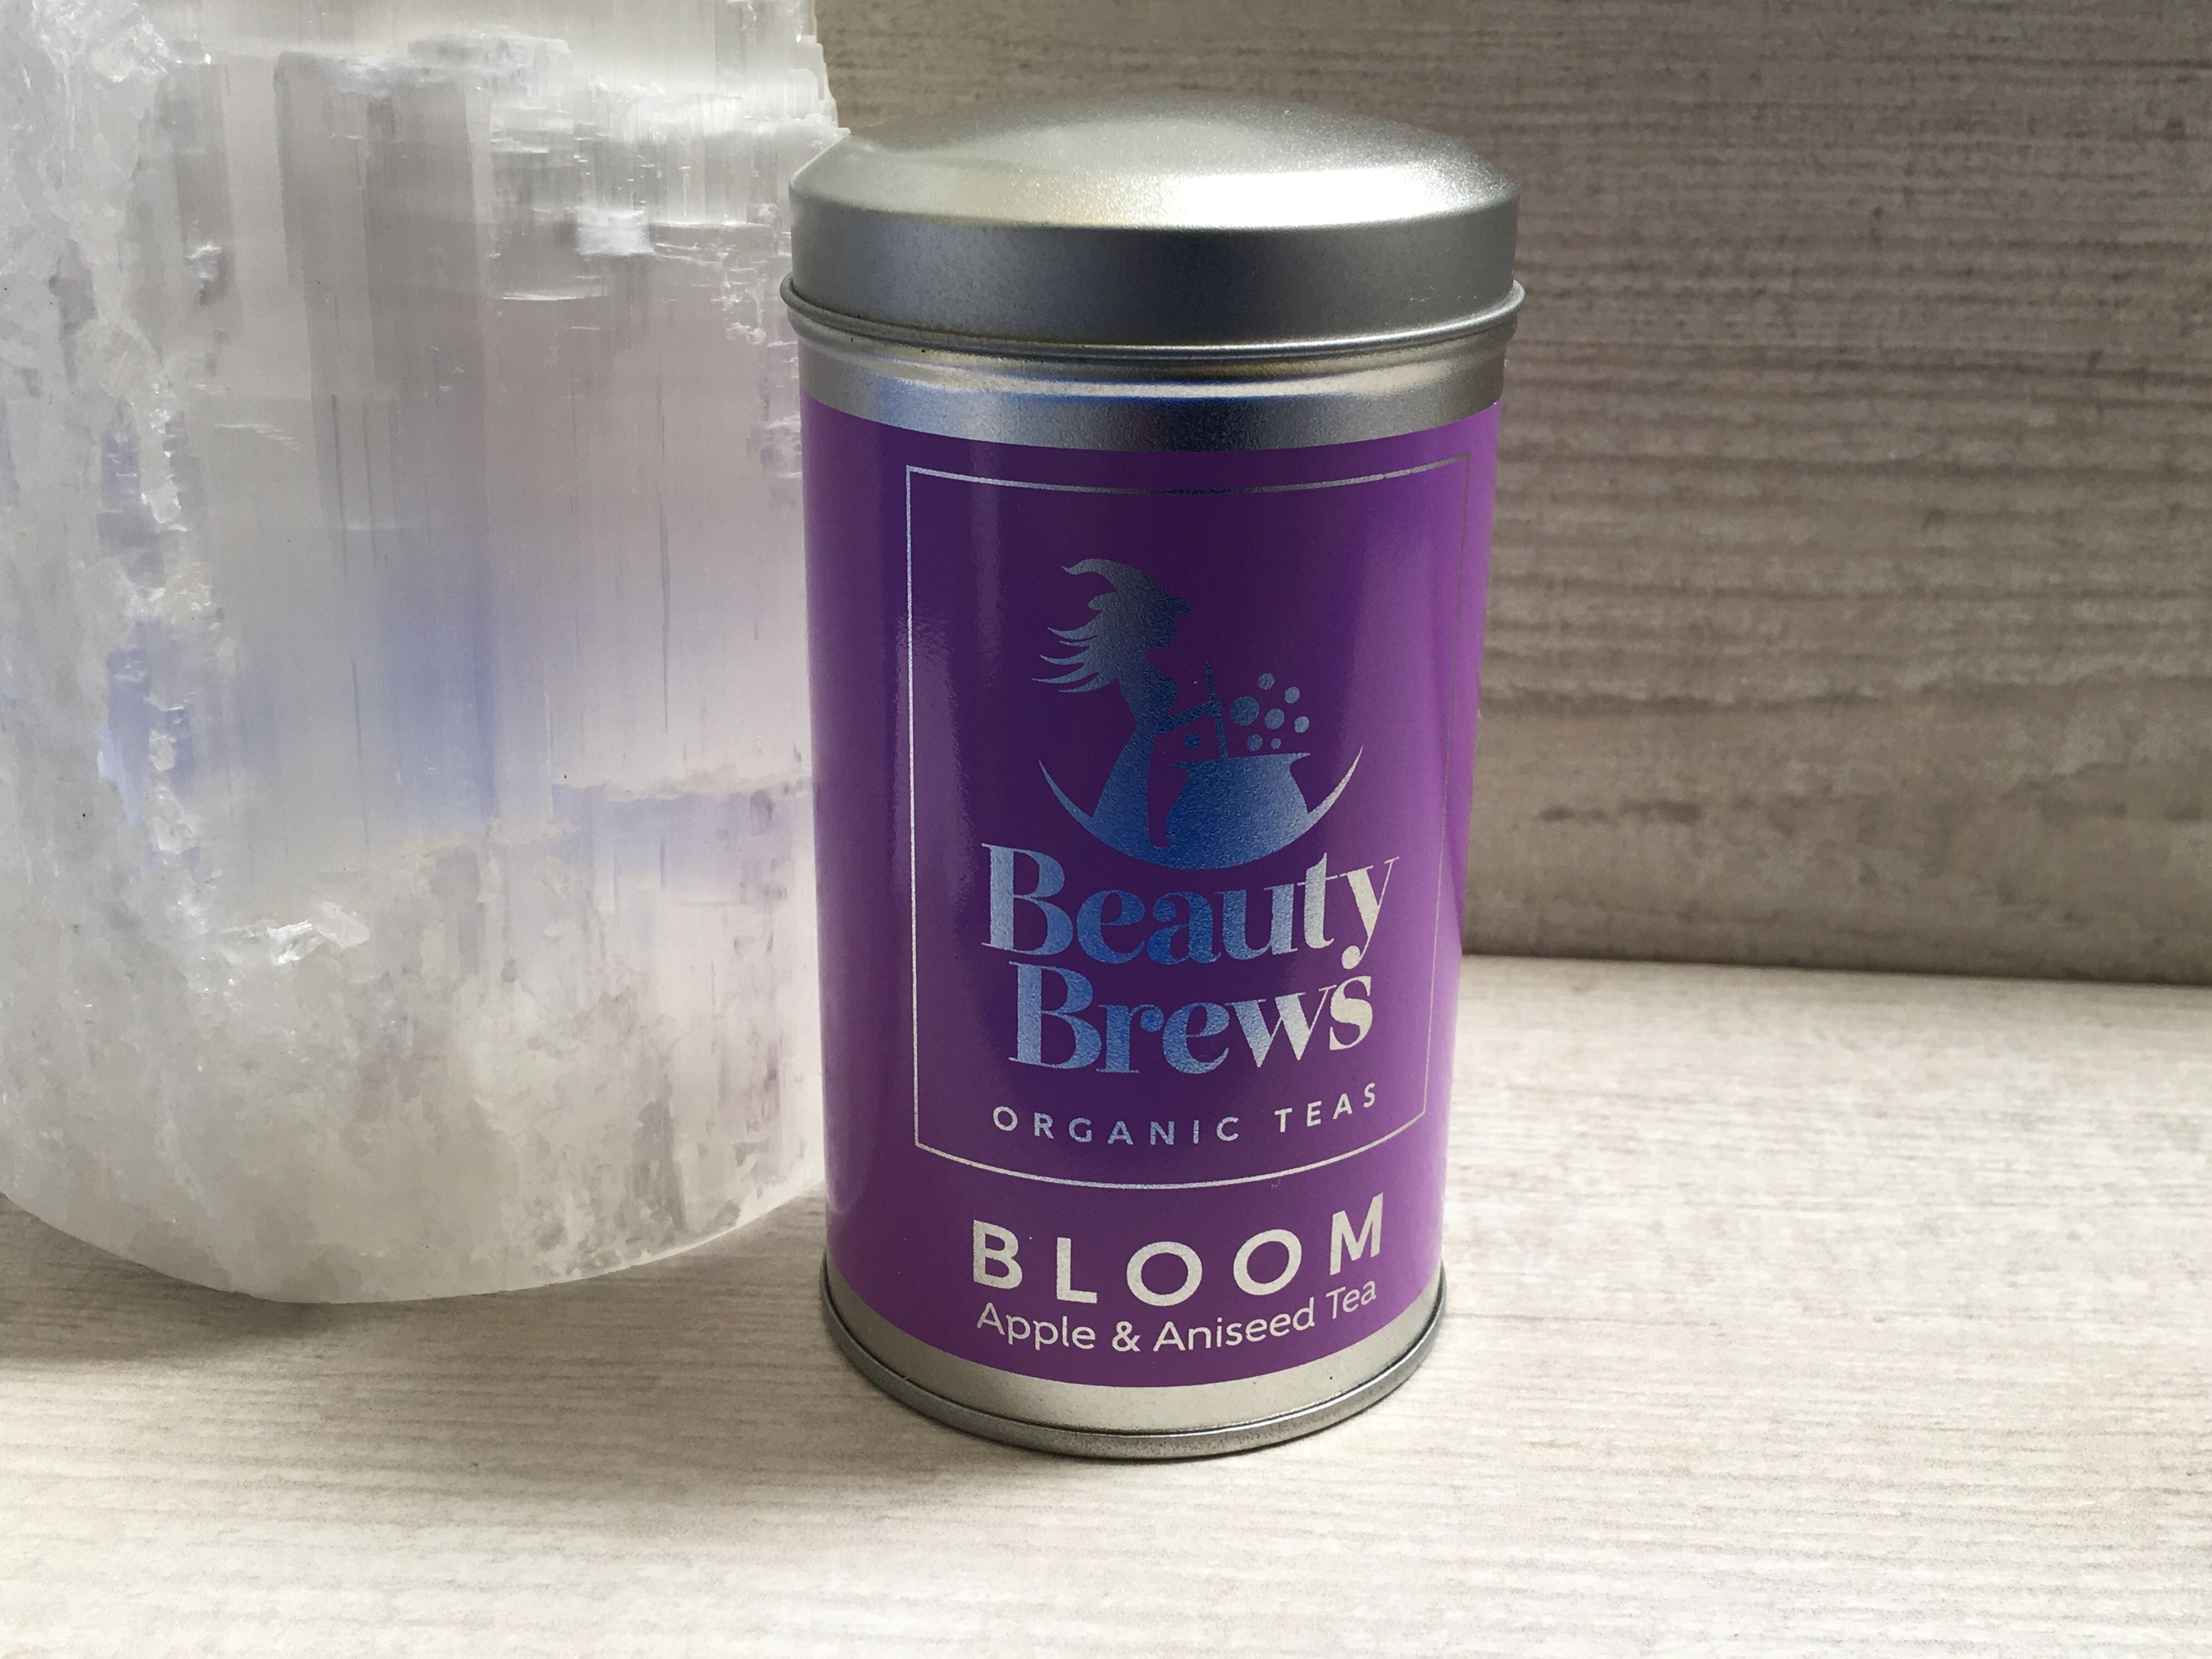 Beauty Brews Bloom - Apple &amp